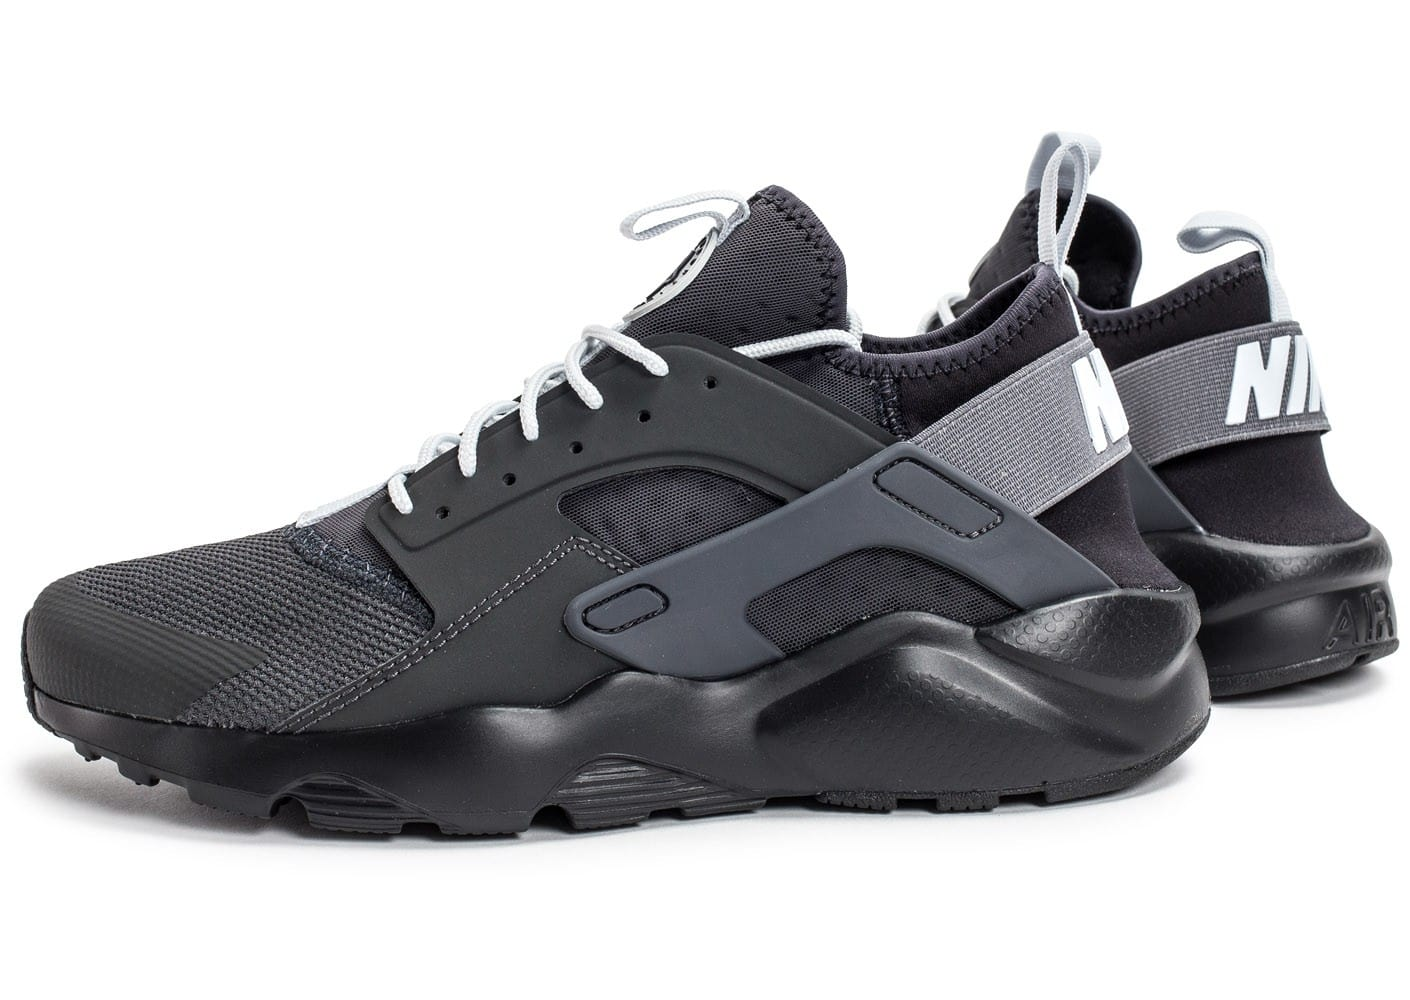 nike air huarache run ultra cool noire et blanche chaussures baskets homme chausport. Black Bedroom Furniture Sets. Home Design Ideas